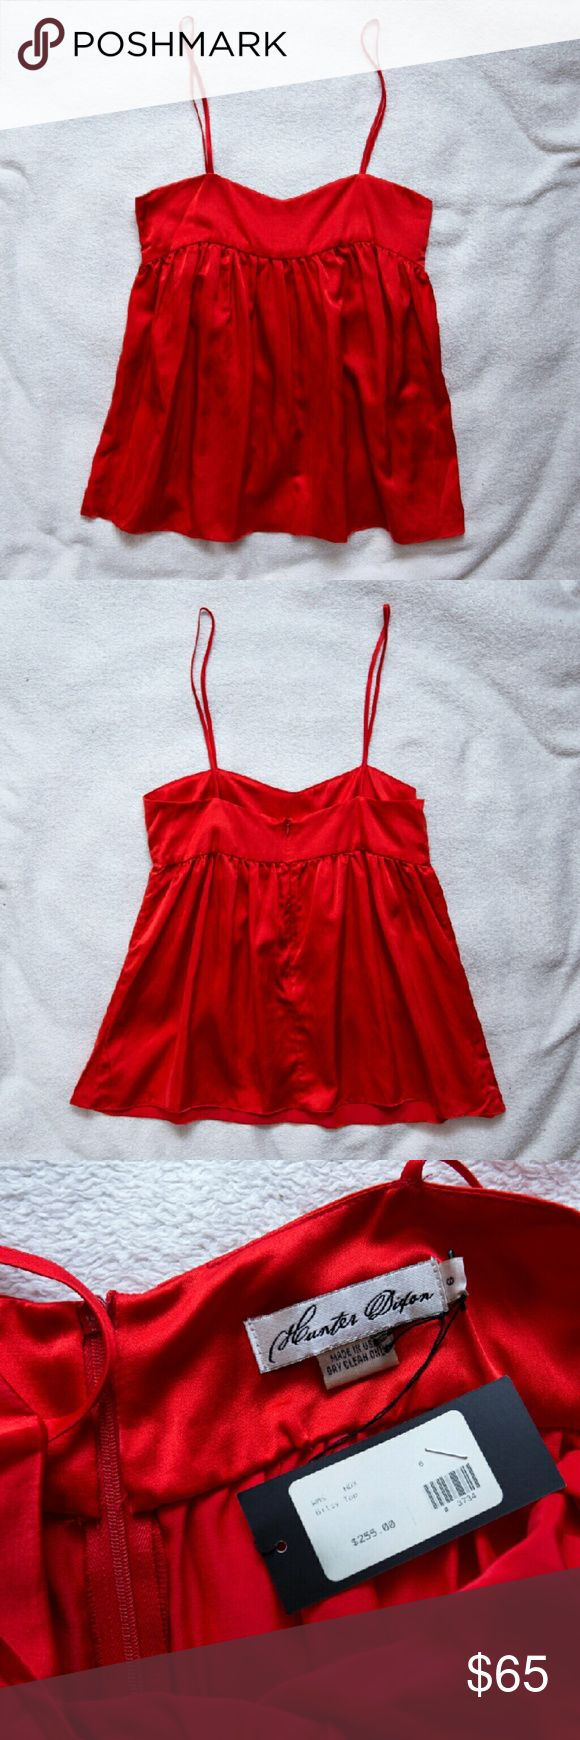 "Hunter Dixon Red Silk Tank NWT US6 $255 New with tags! This is a beautiful red silk tank by Hunter Dixon! It is very low-cut, and the spaghetti straps are not adjustable, so be aware that you will probably need to take them in a bit. It was made in the USA with 100% silk, and it measures 28"" long, and 16"" across the chest from under the arm. This is a beautiful top for evening wear, and versatile enough to wear with many colors. Hunter Dixon Tops Camisoles"